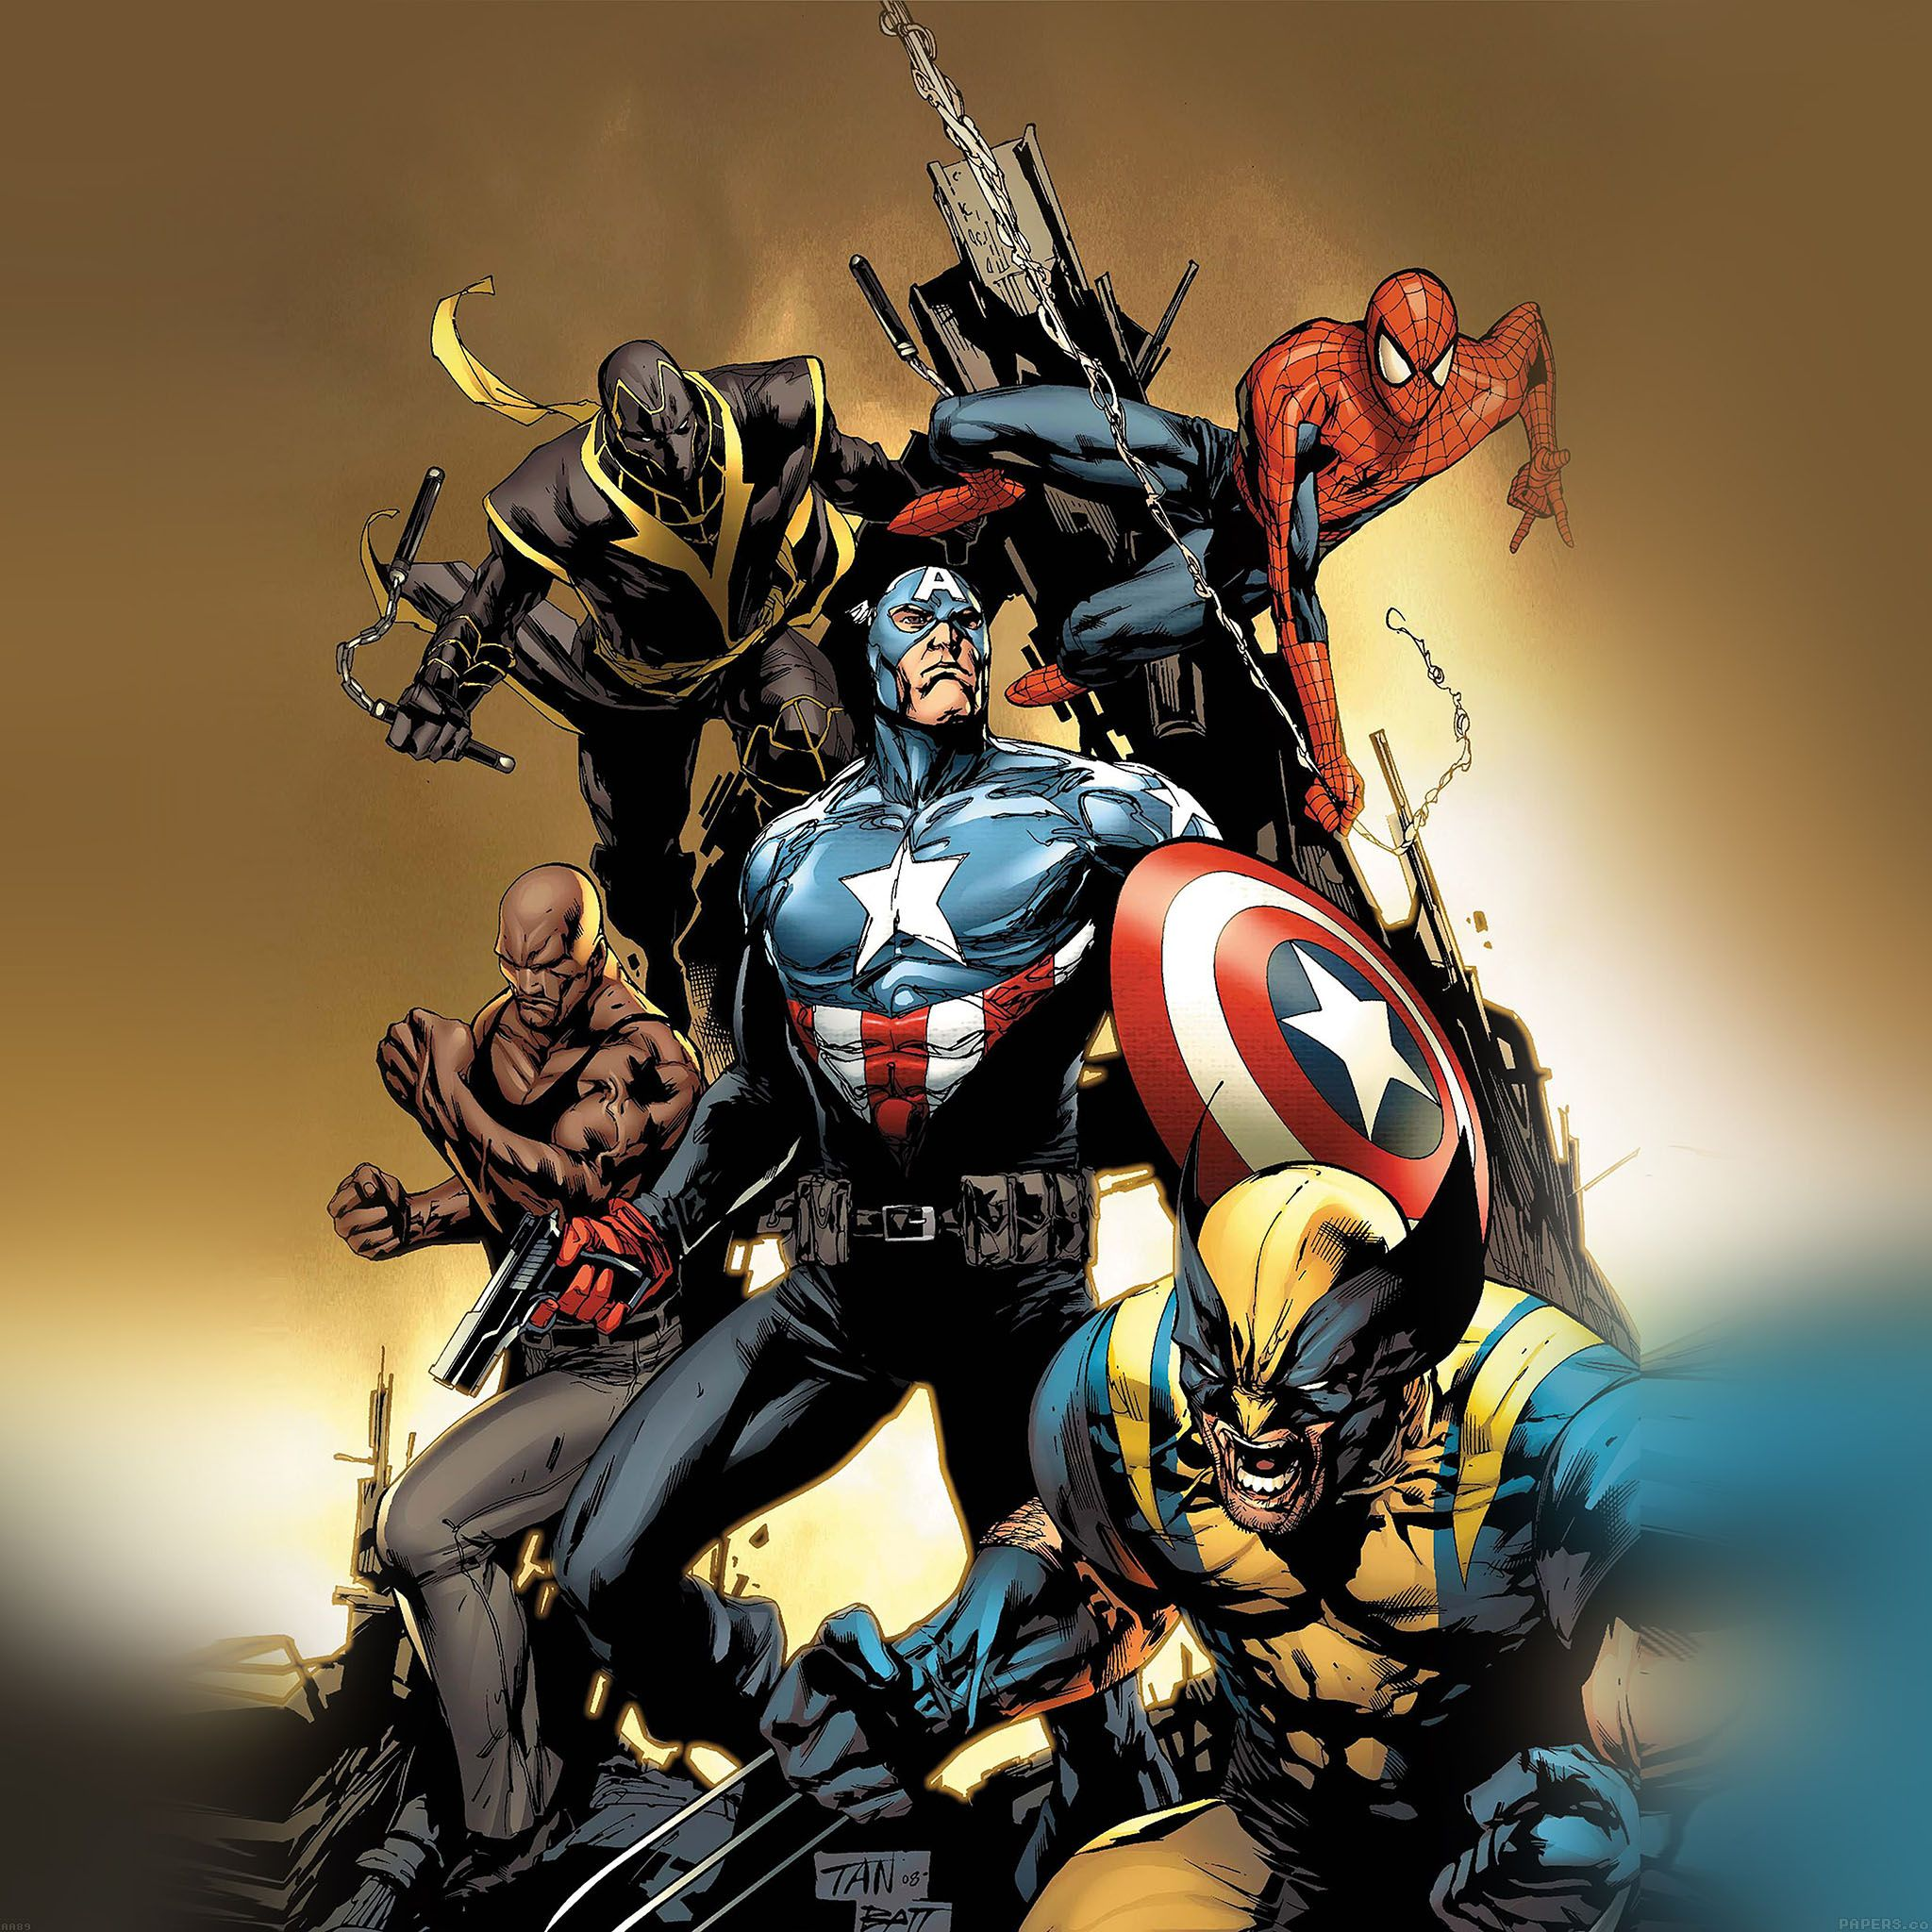 Avengers Android Wallpapers   Top Avengers Android 2048x2048